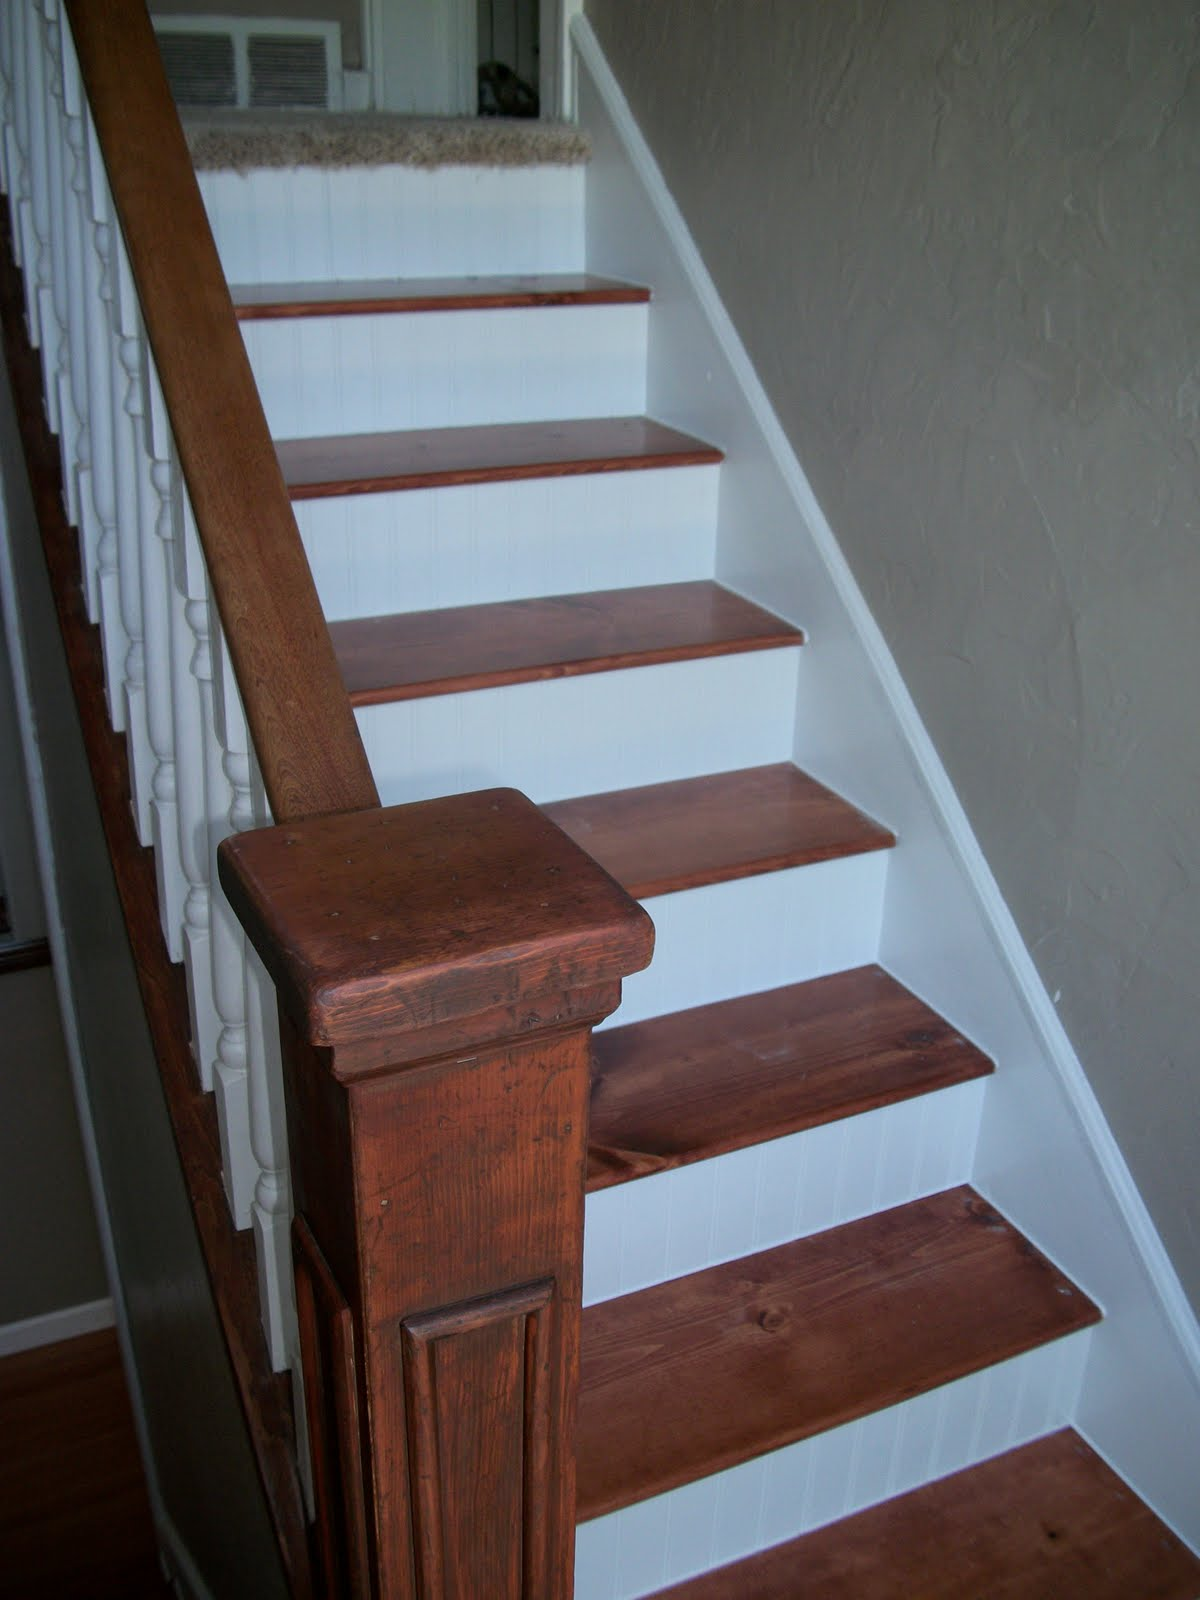 100 Year Old Staircase Makeover Revealed | Redoing Stairs With Wood